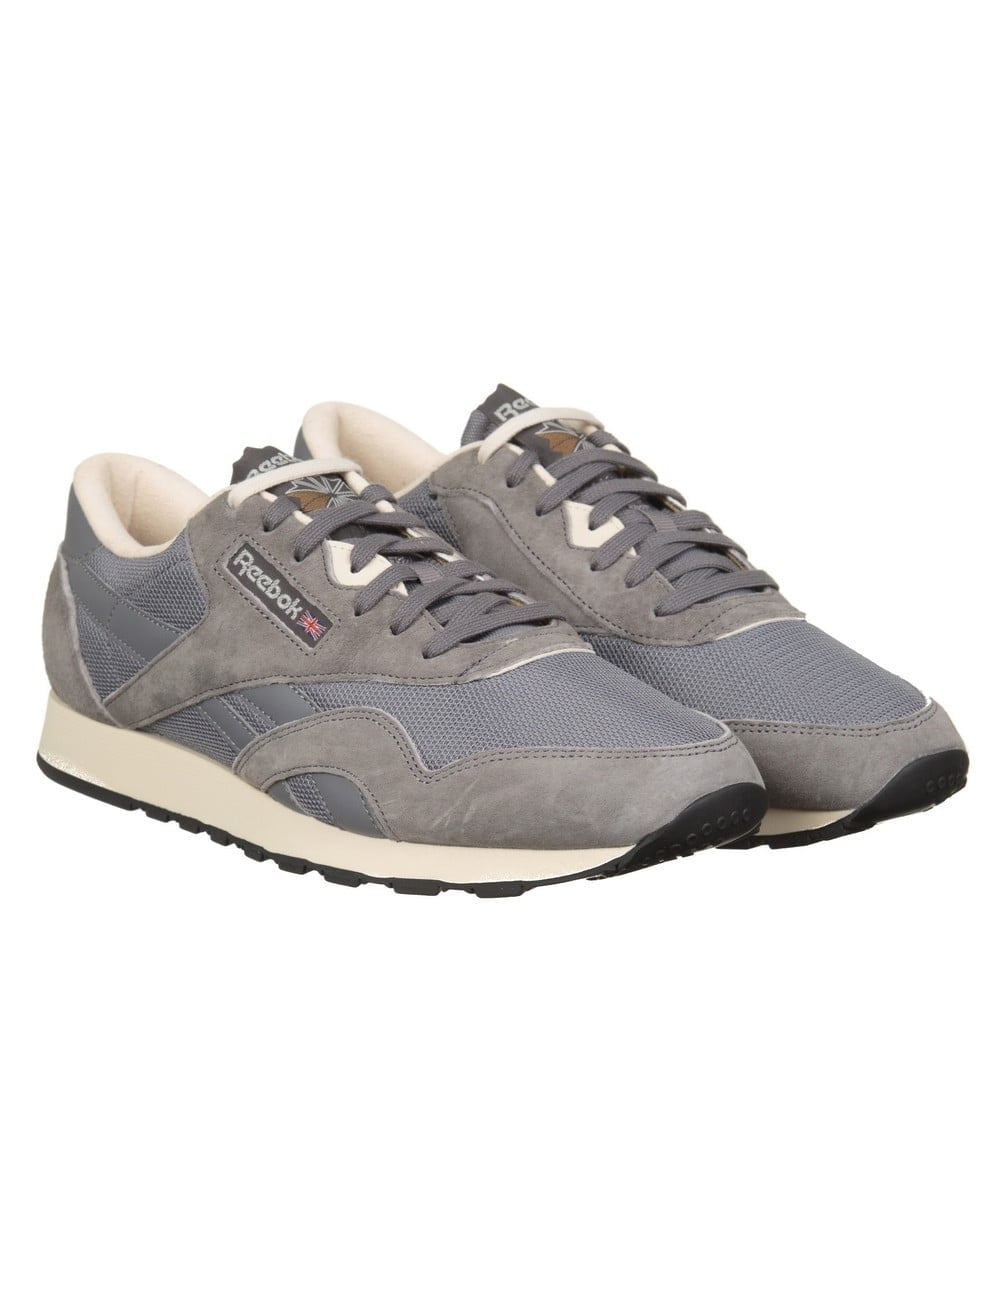 cd2848c018aa Reebok CL Nylon P Trainers - Shark PPRW White - Footwear from Fat ...